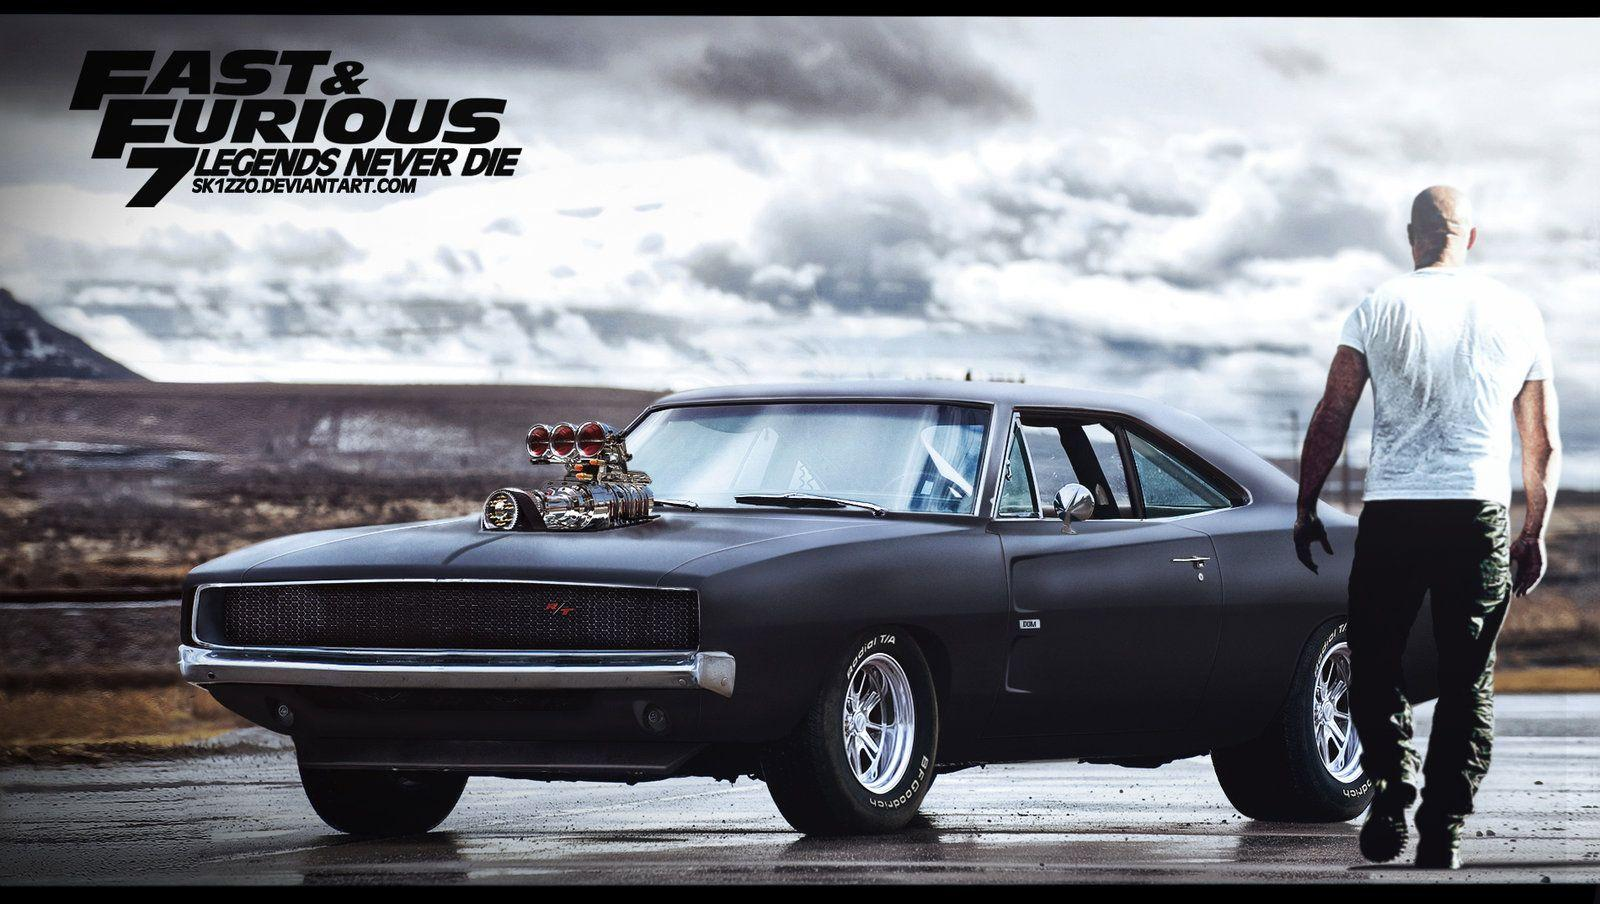 Fast And Furious 7 HD Wallpapers for iPhone 6